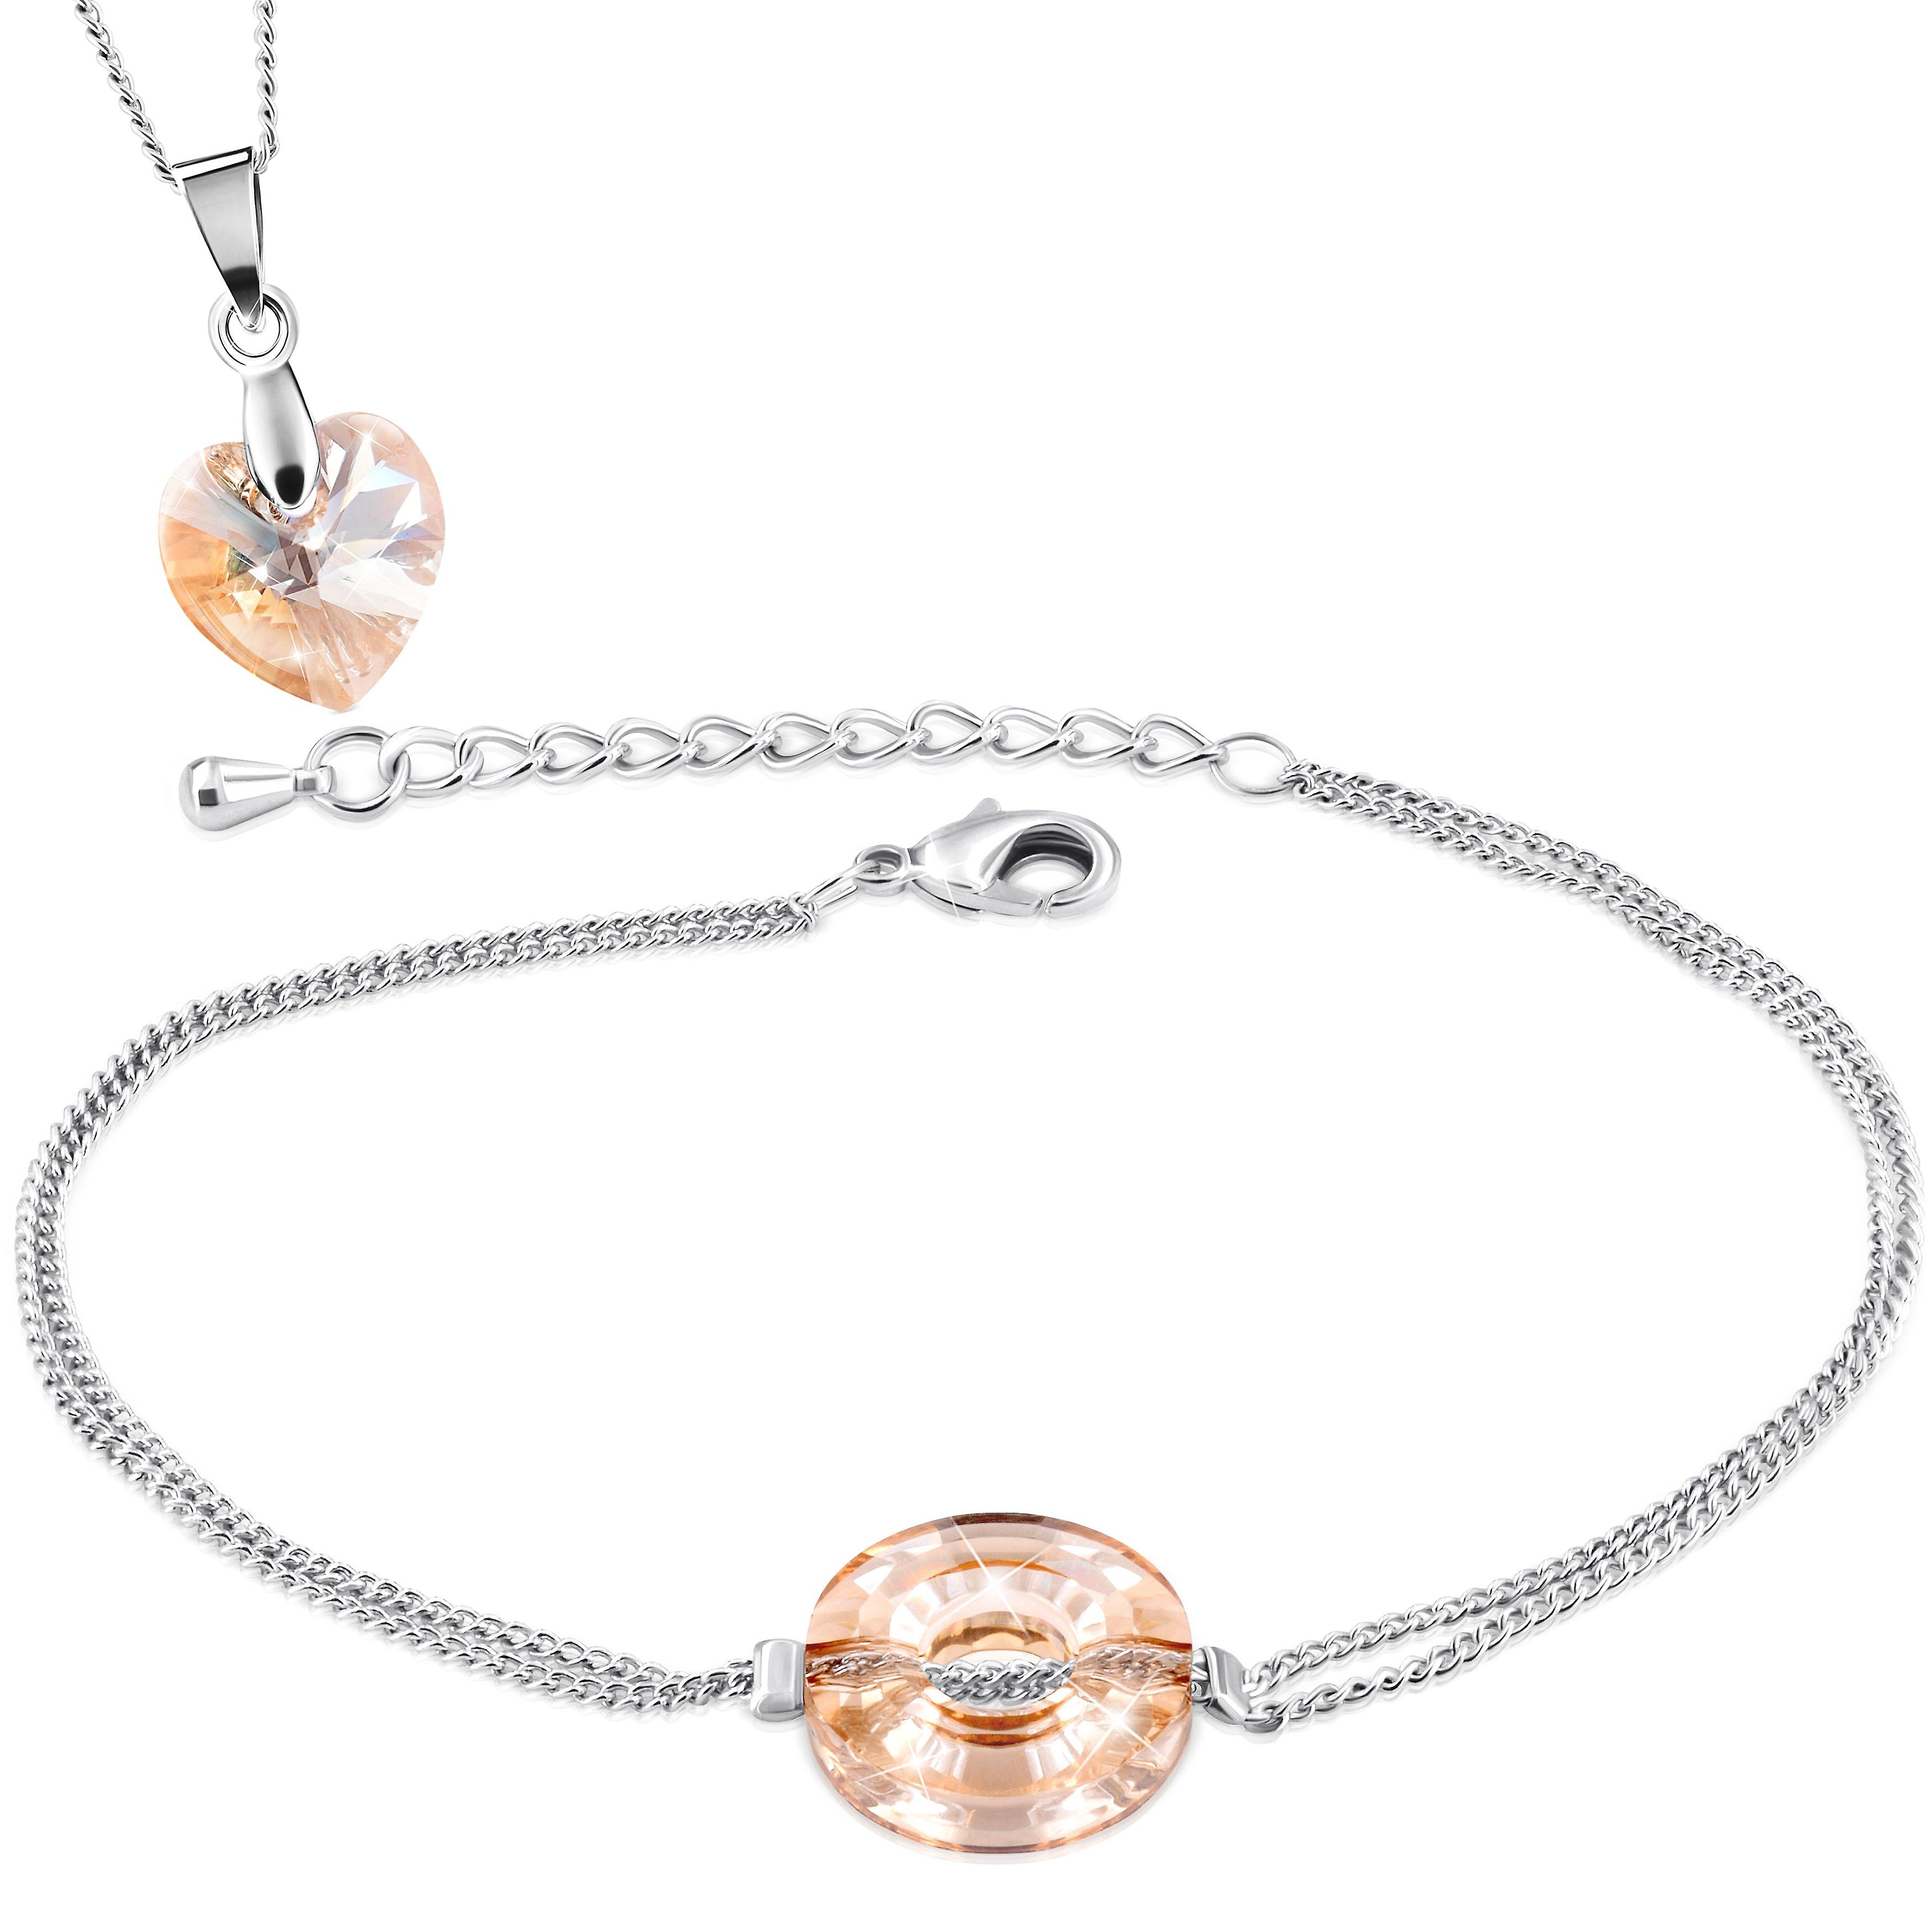 Necklace and bracelet with swarovski crystal. rhodium plated. by 2splendid. 2 for 1. gift box included. bnqz028